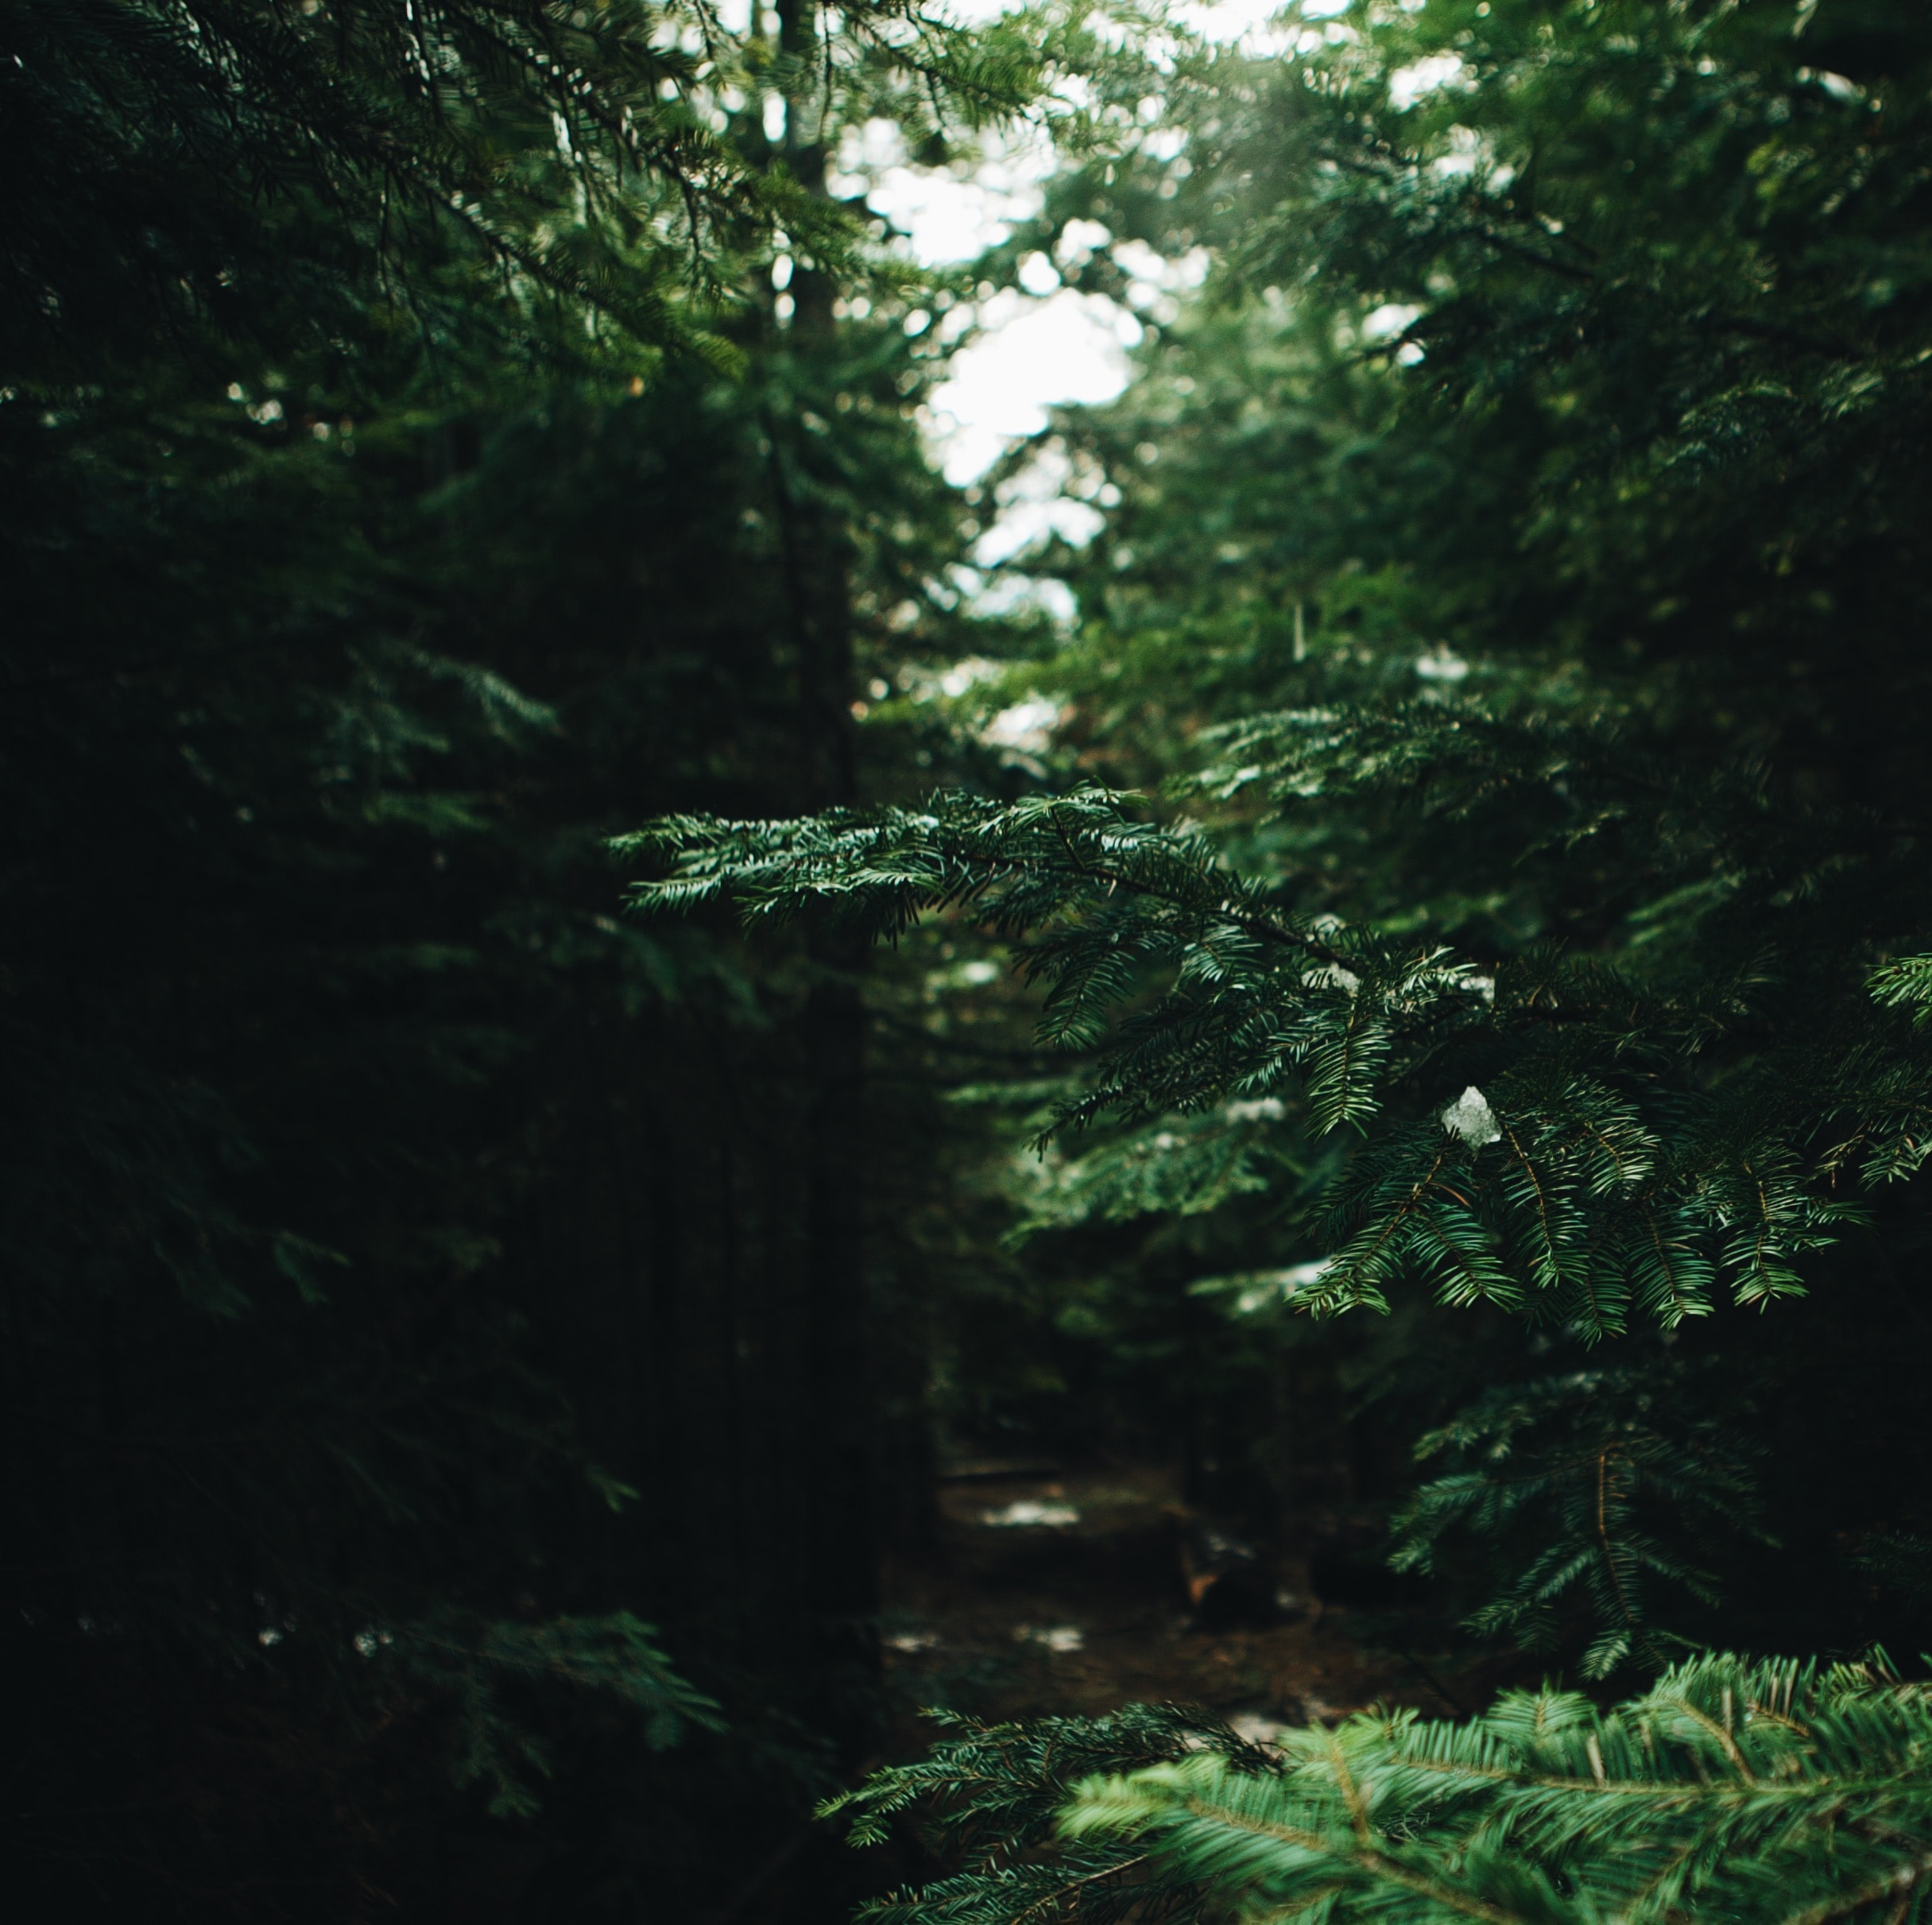 Green coniferous branches hanging over a forest trail